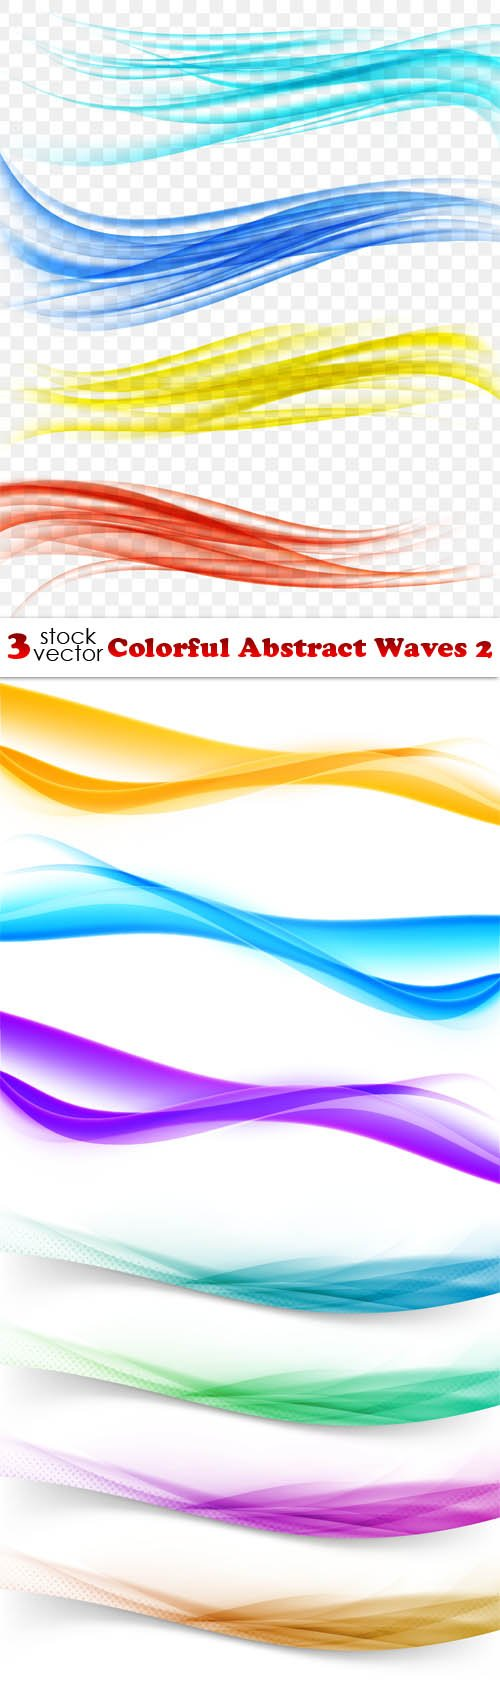 Vectors - Colorful Abstract Waves 2